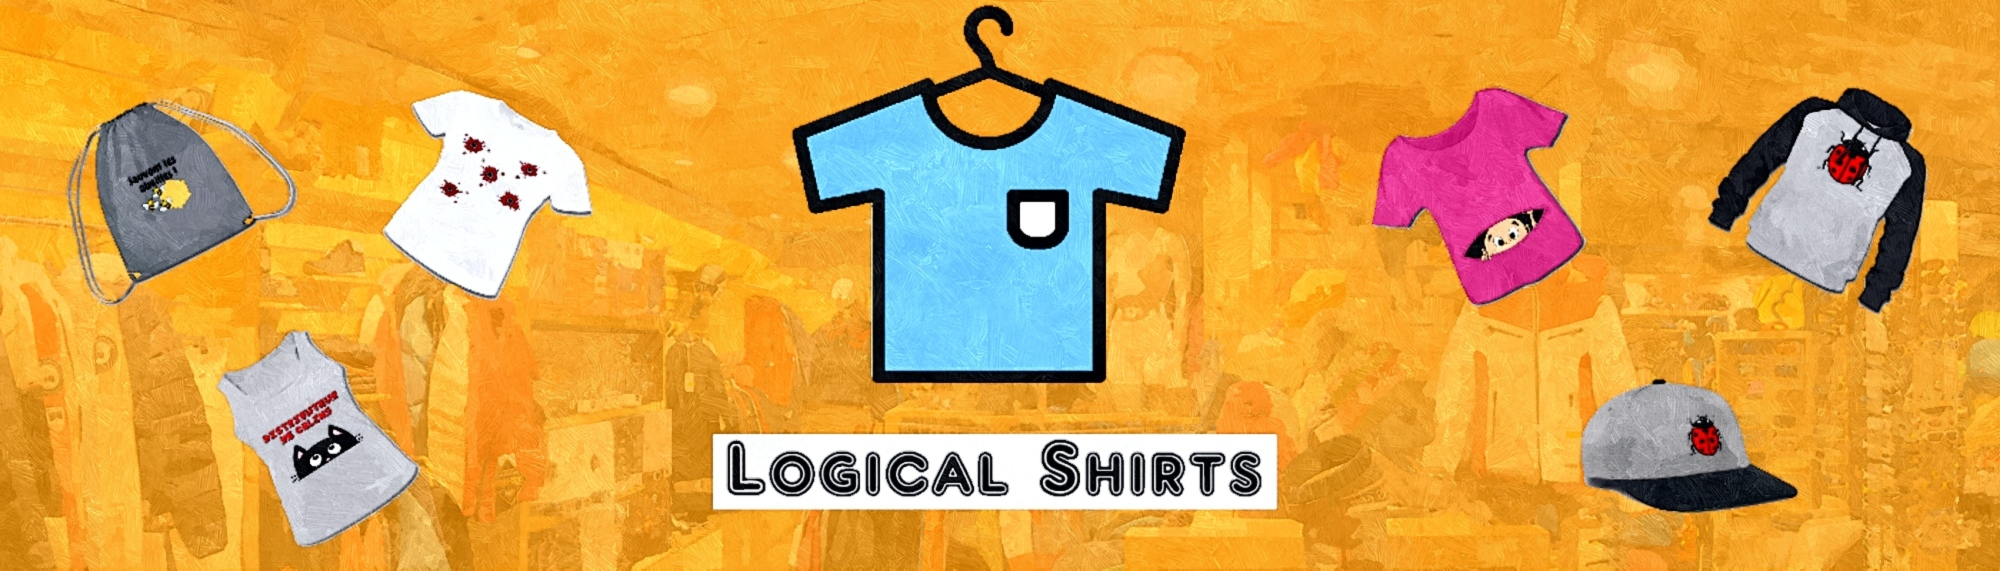 Galerie - Logical Shirts